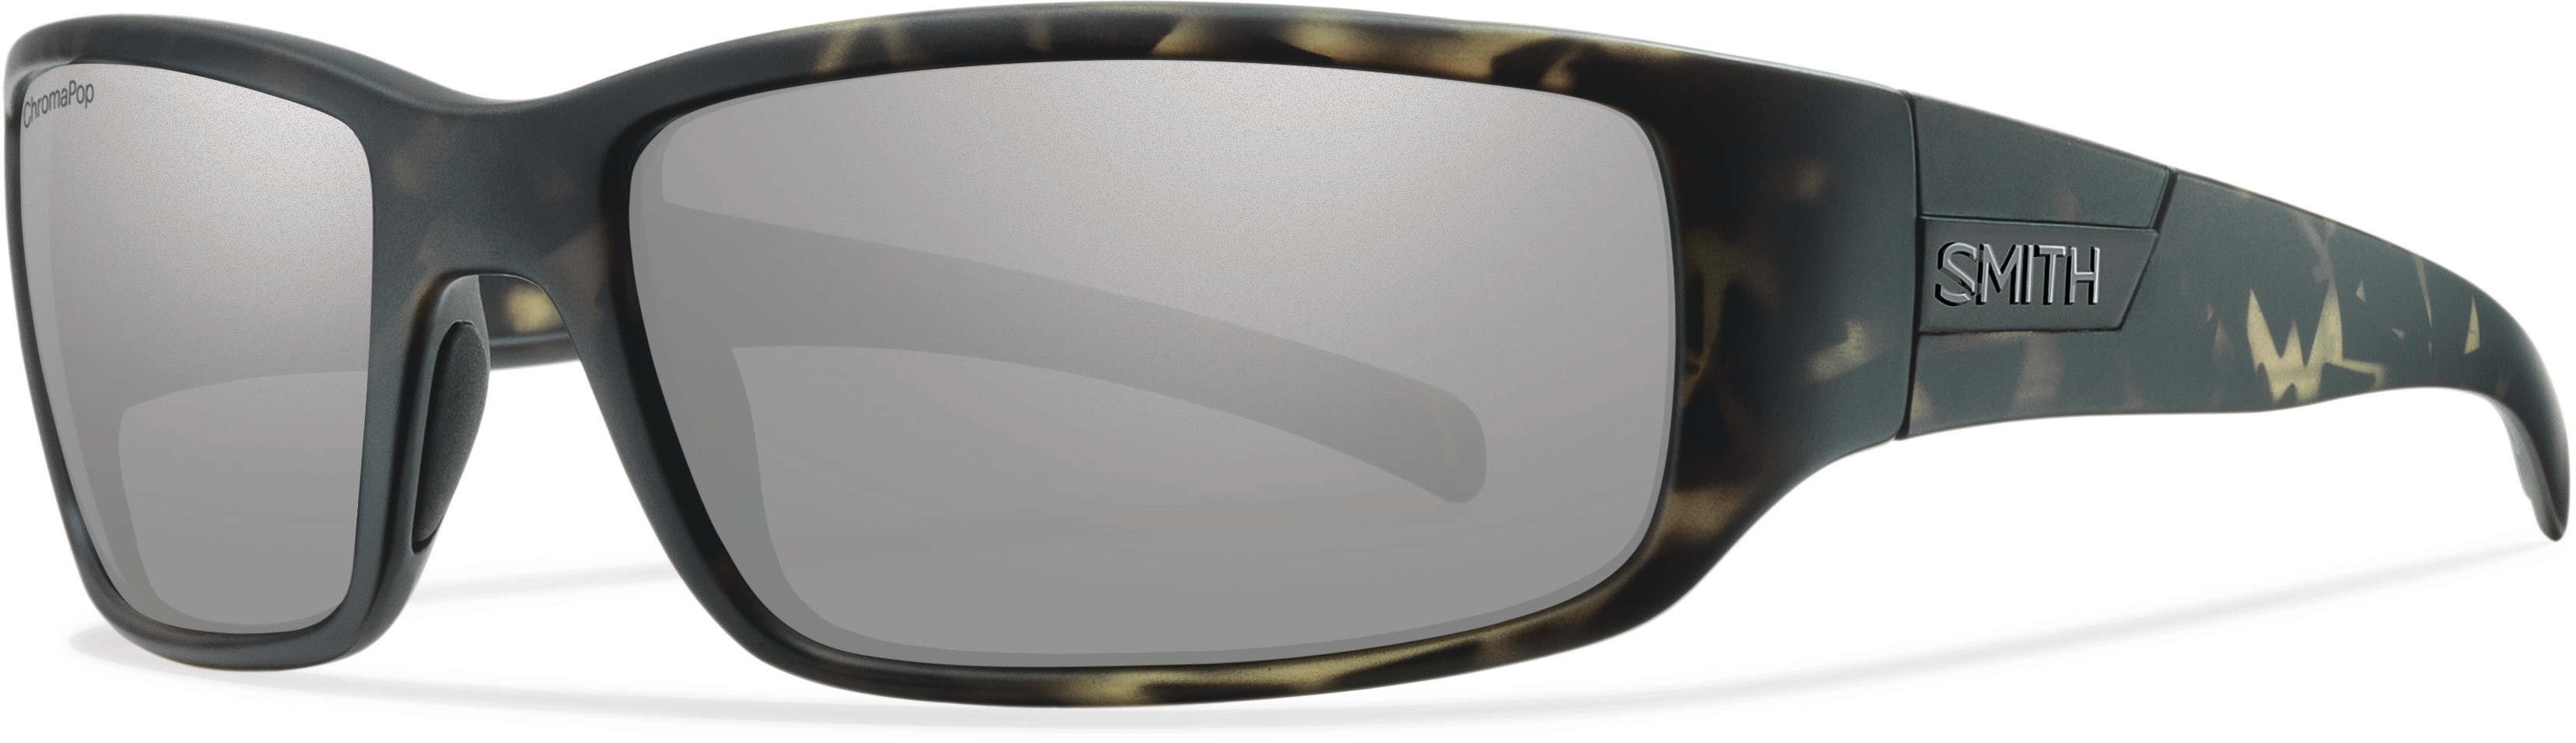 6808148c478 Smith Optics Prospect Sunglasses - UV Protection — CampSaver